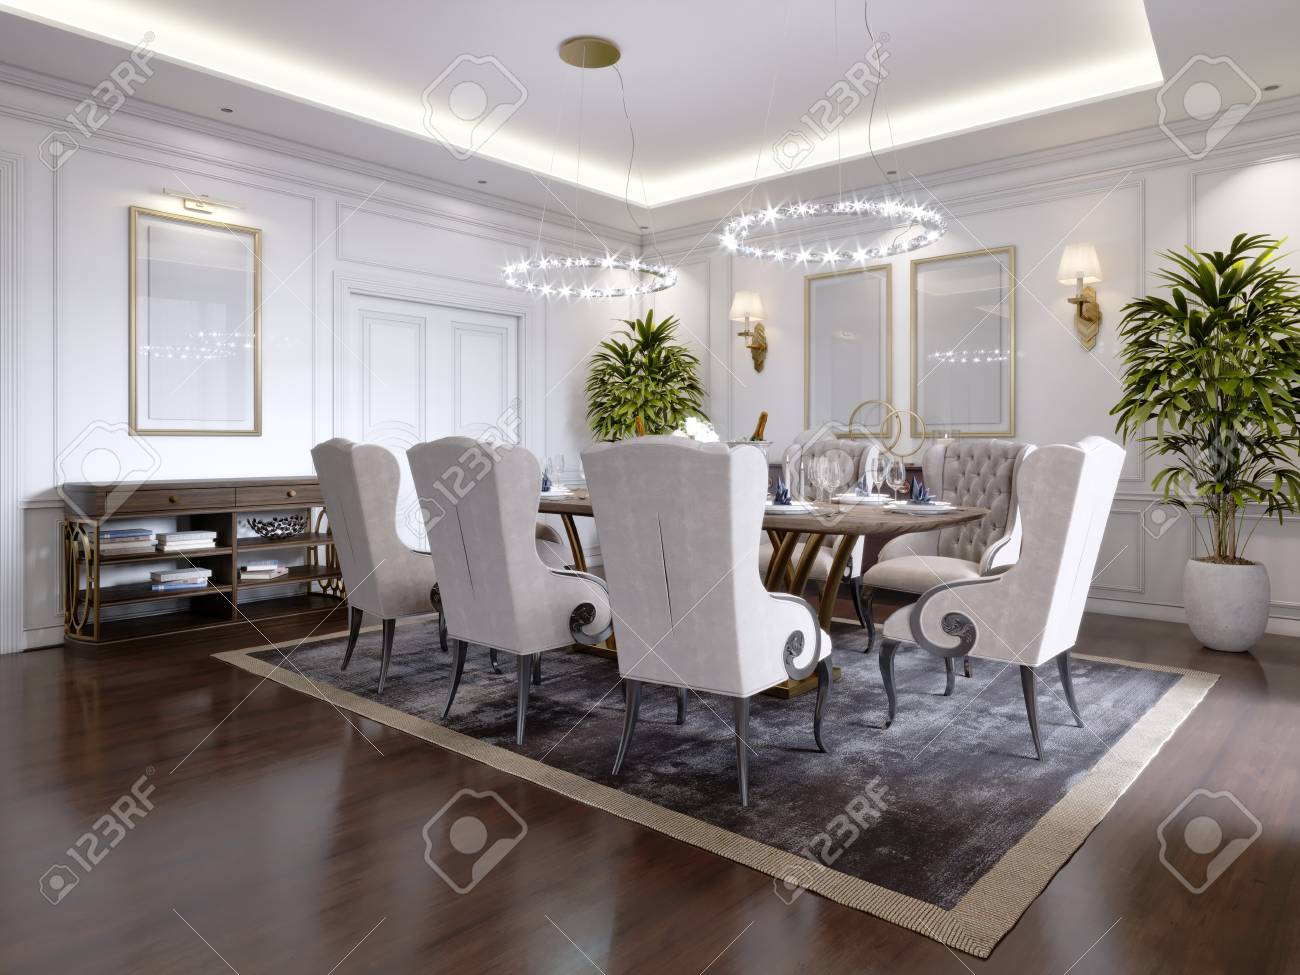 Large Dining Table For Eight People In The Dining Room Classic